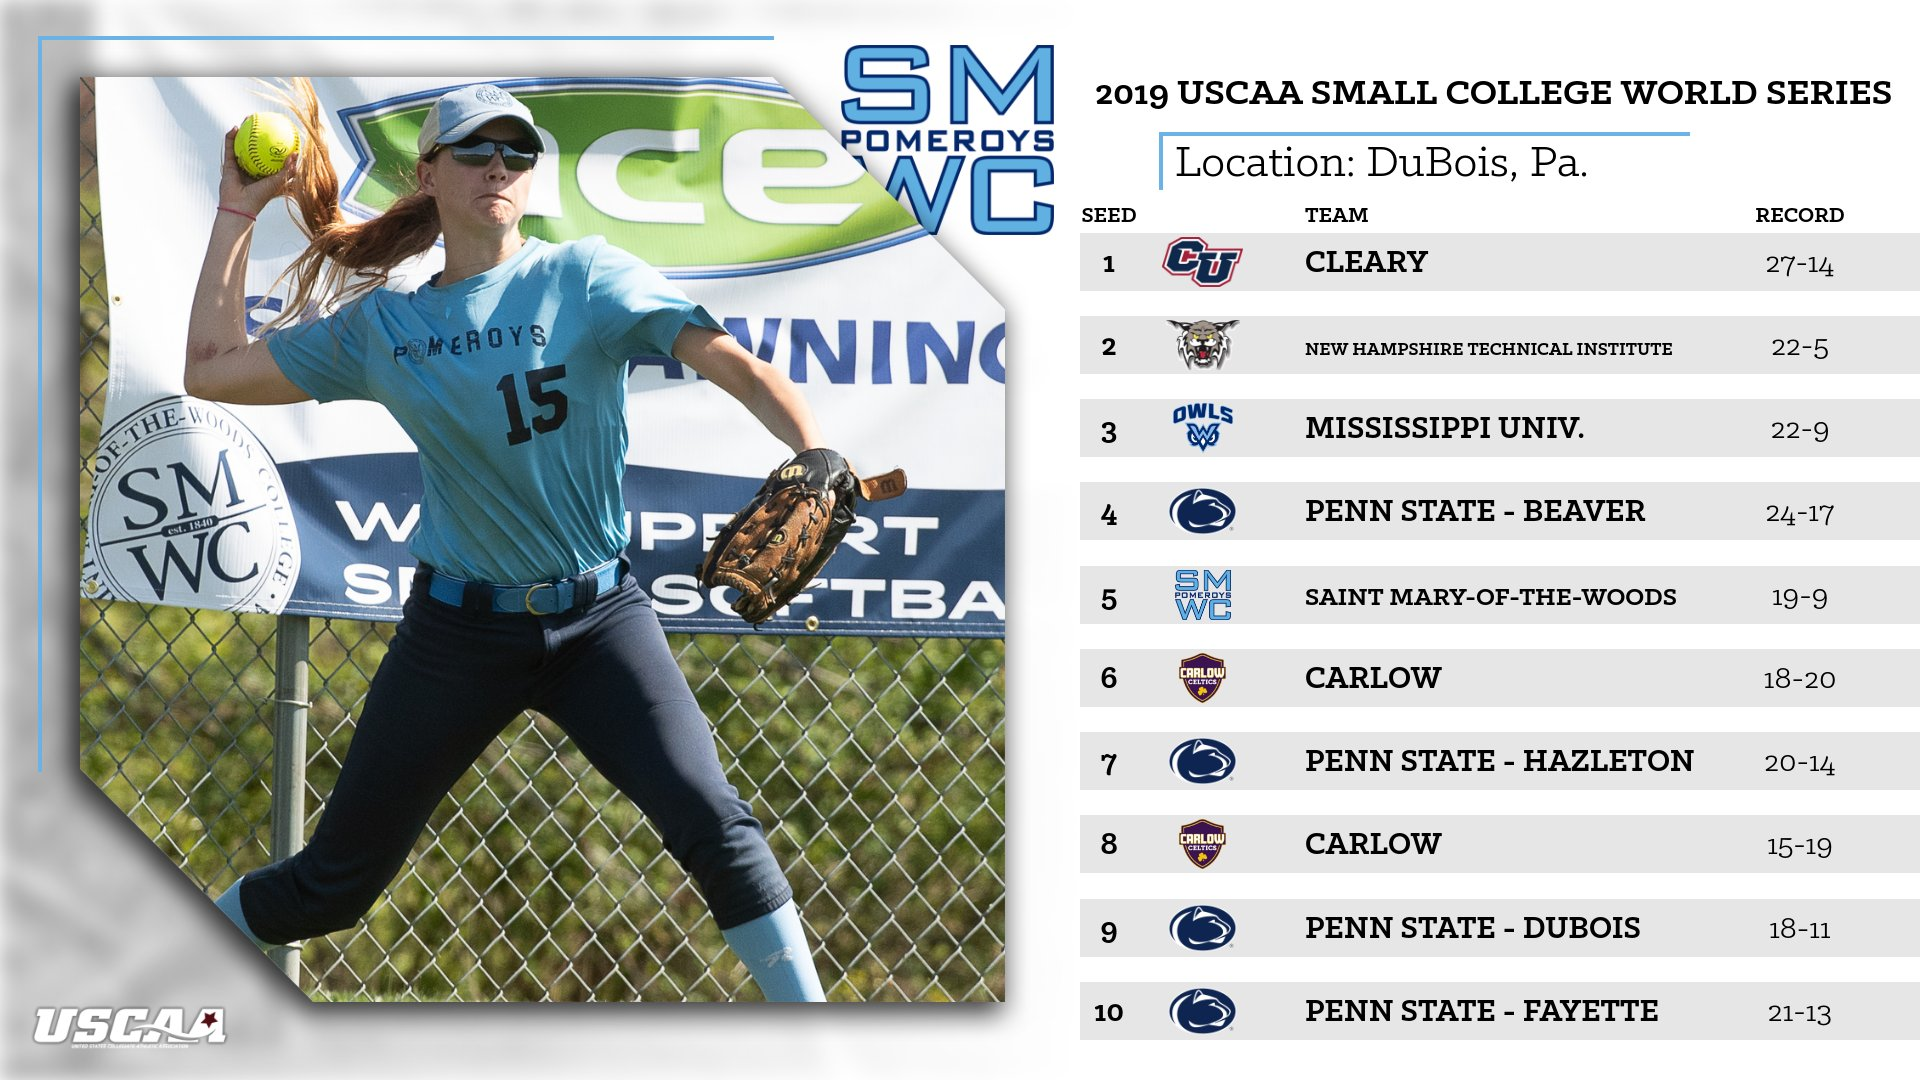 SMWC Softball Secures #5 Seed in USCAA Small College World Series